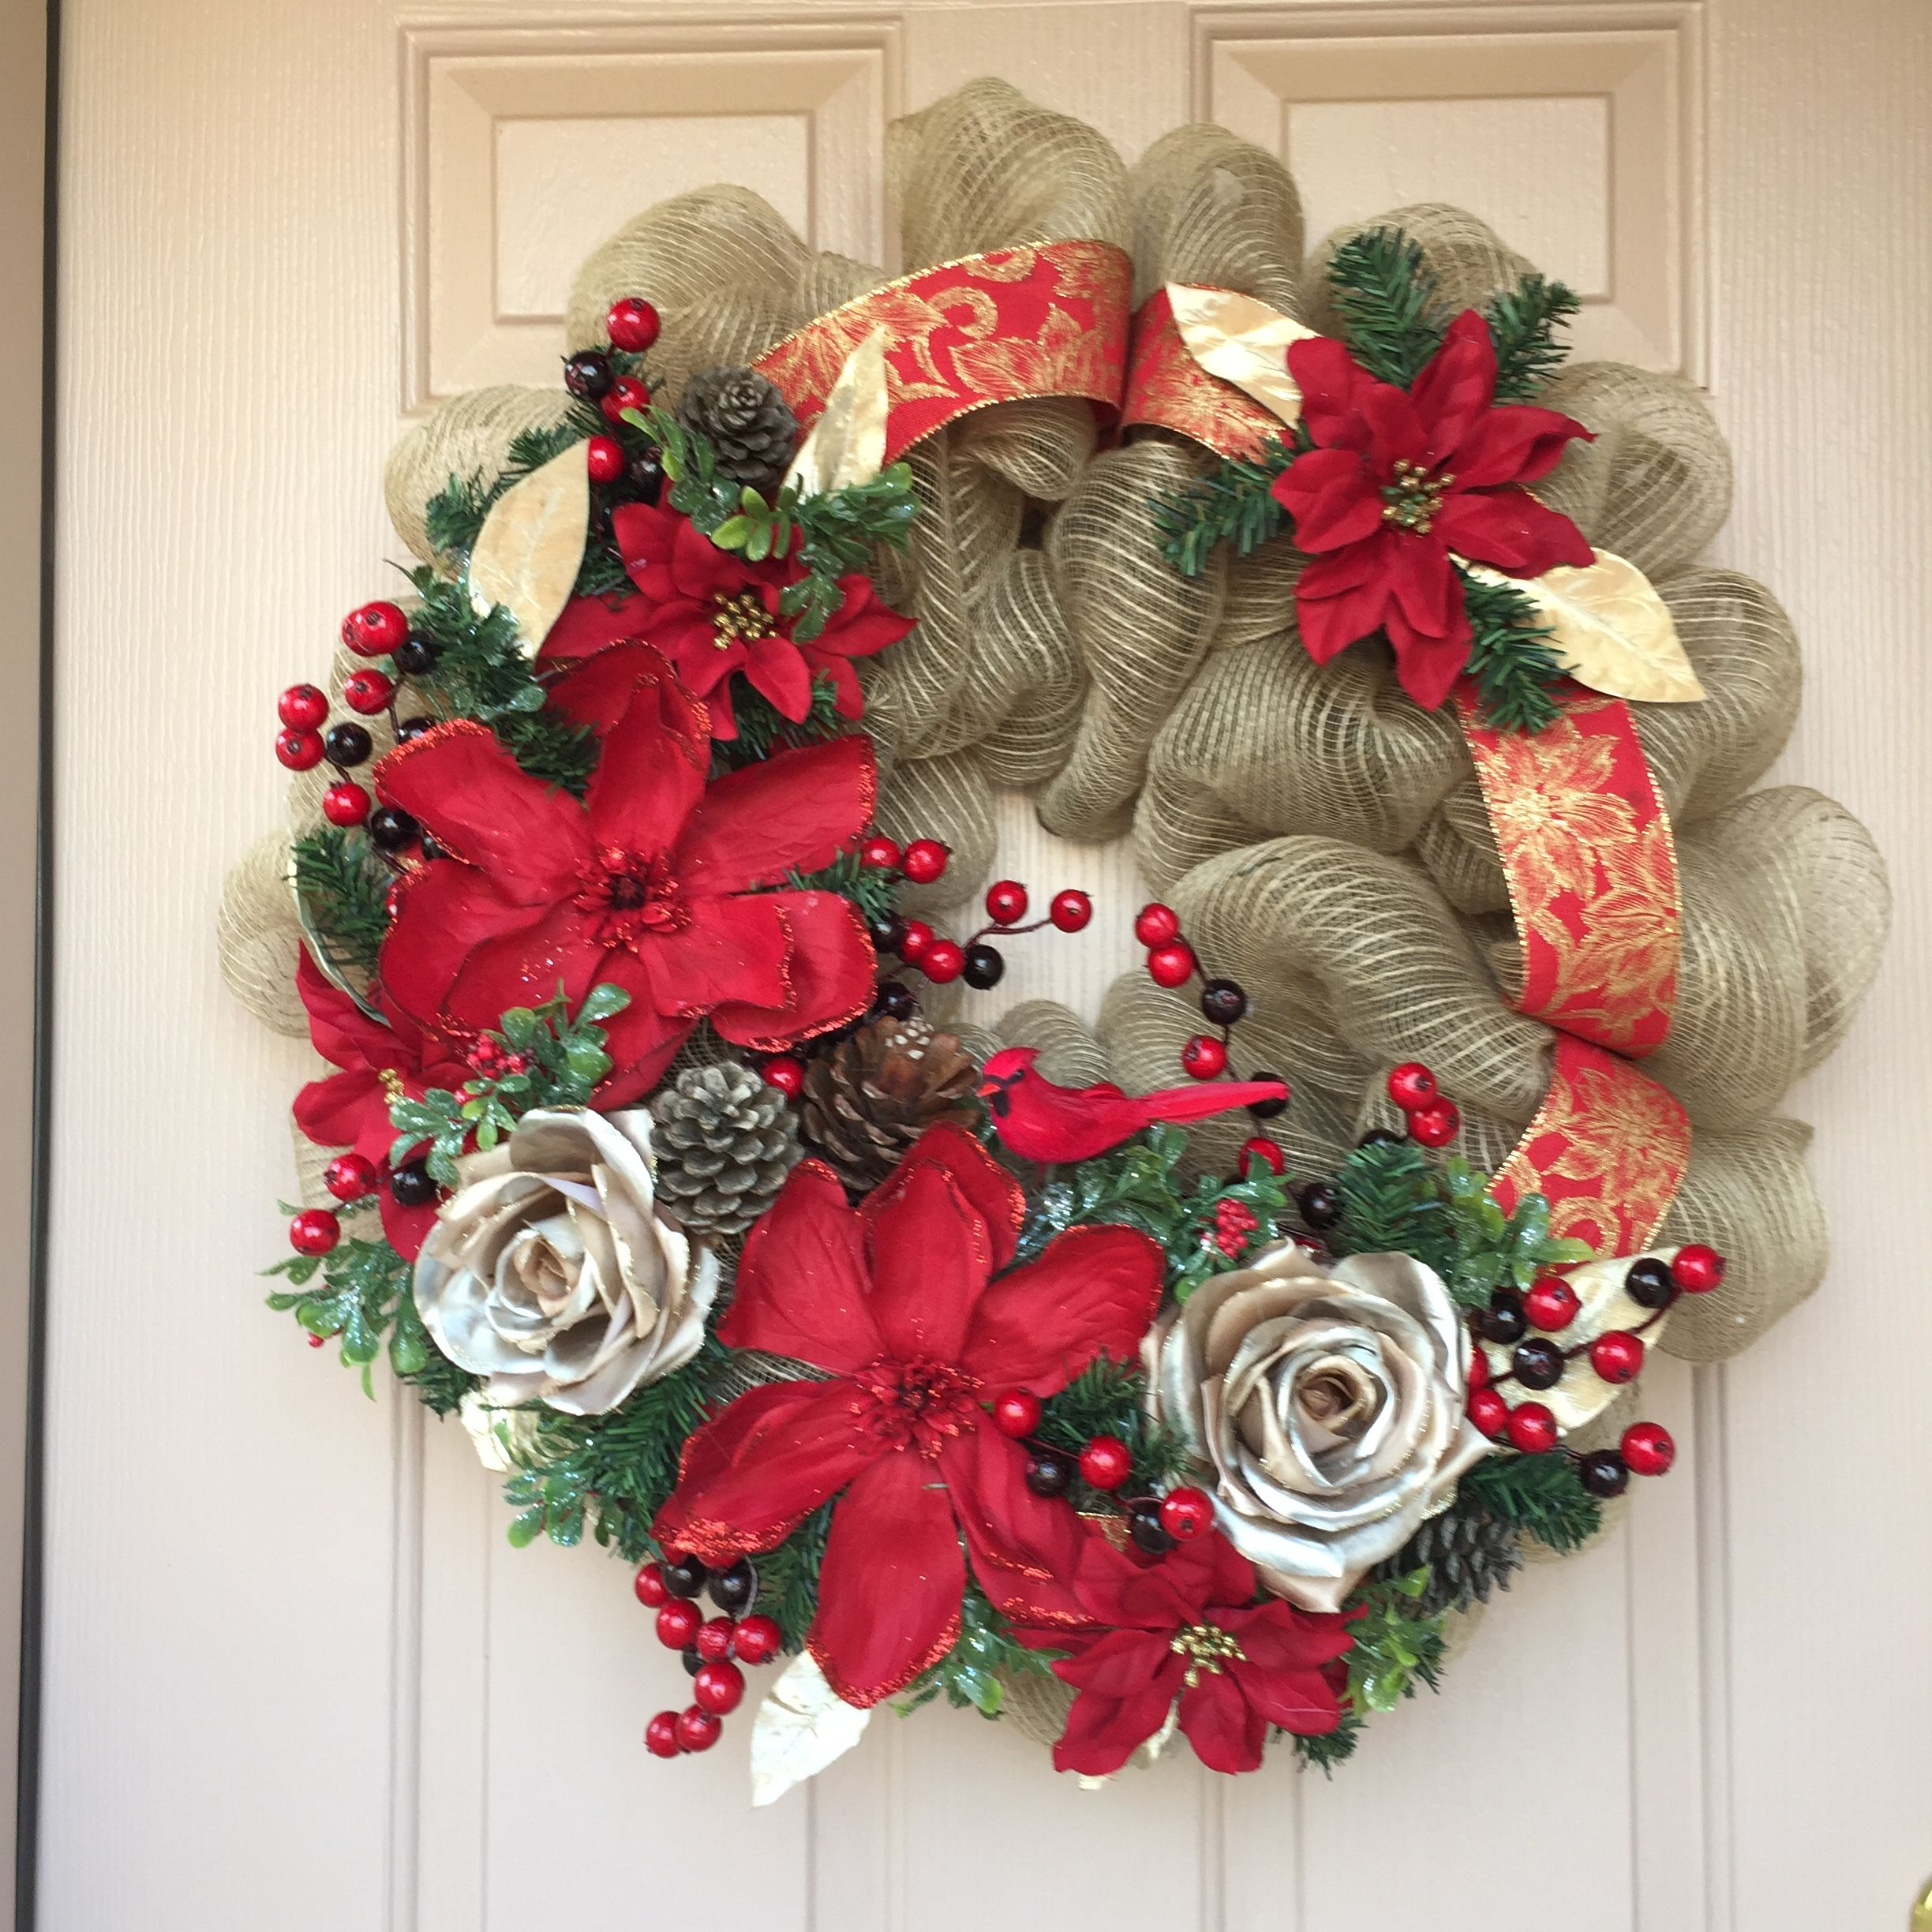 Pin By Angie Daniel On Wreaths